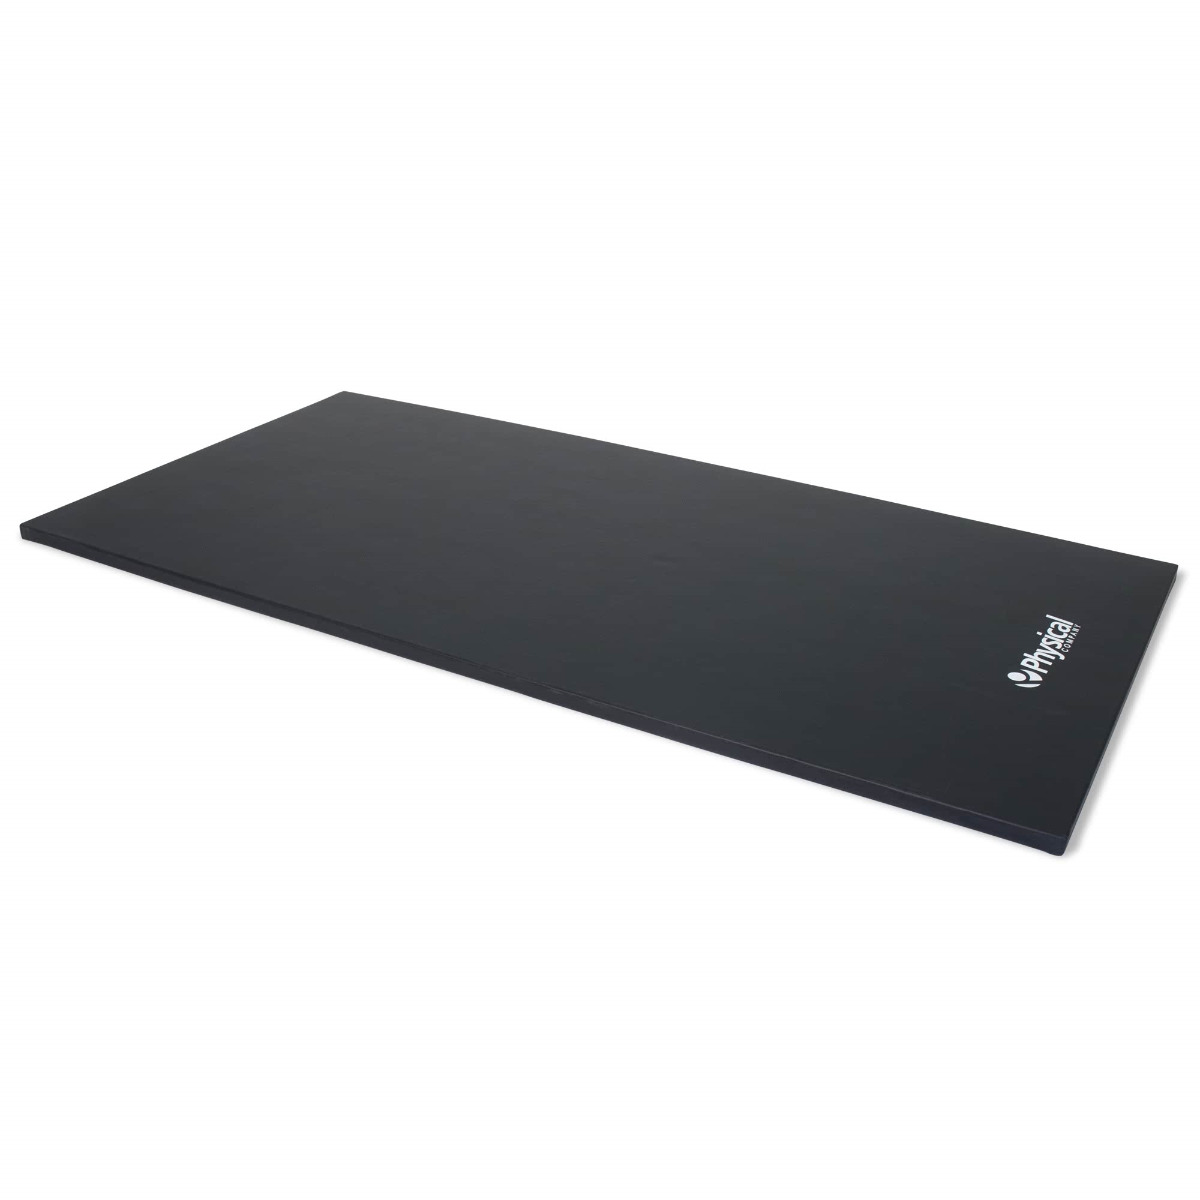 Large Studio Stretch Mat - Black